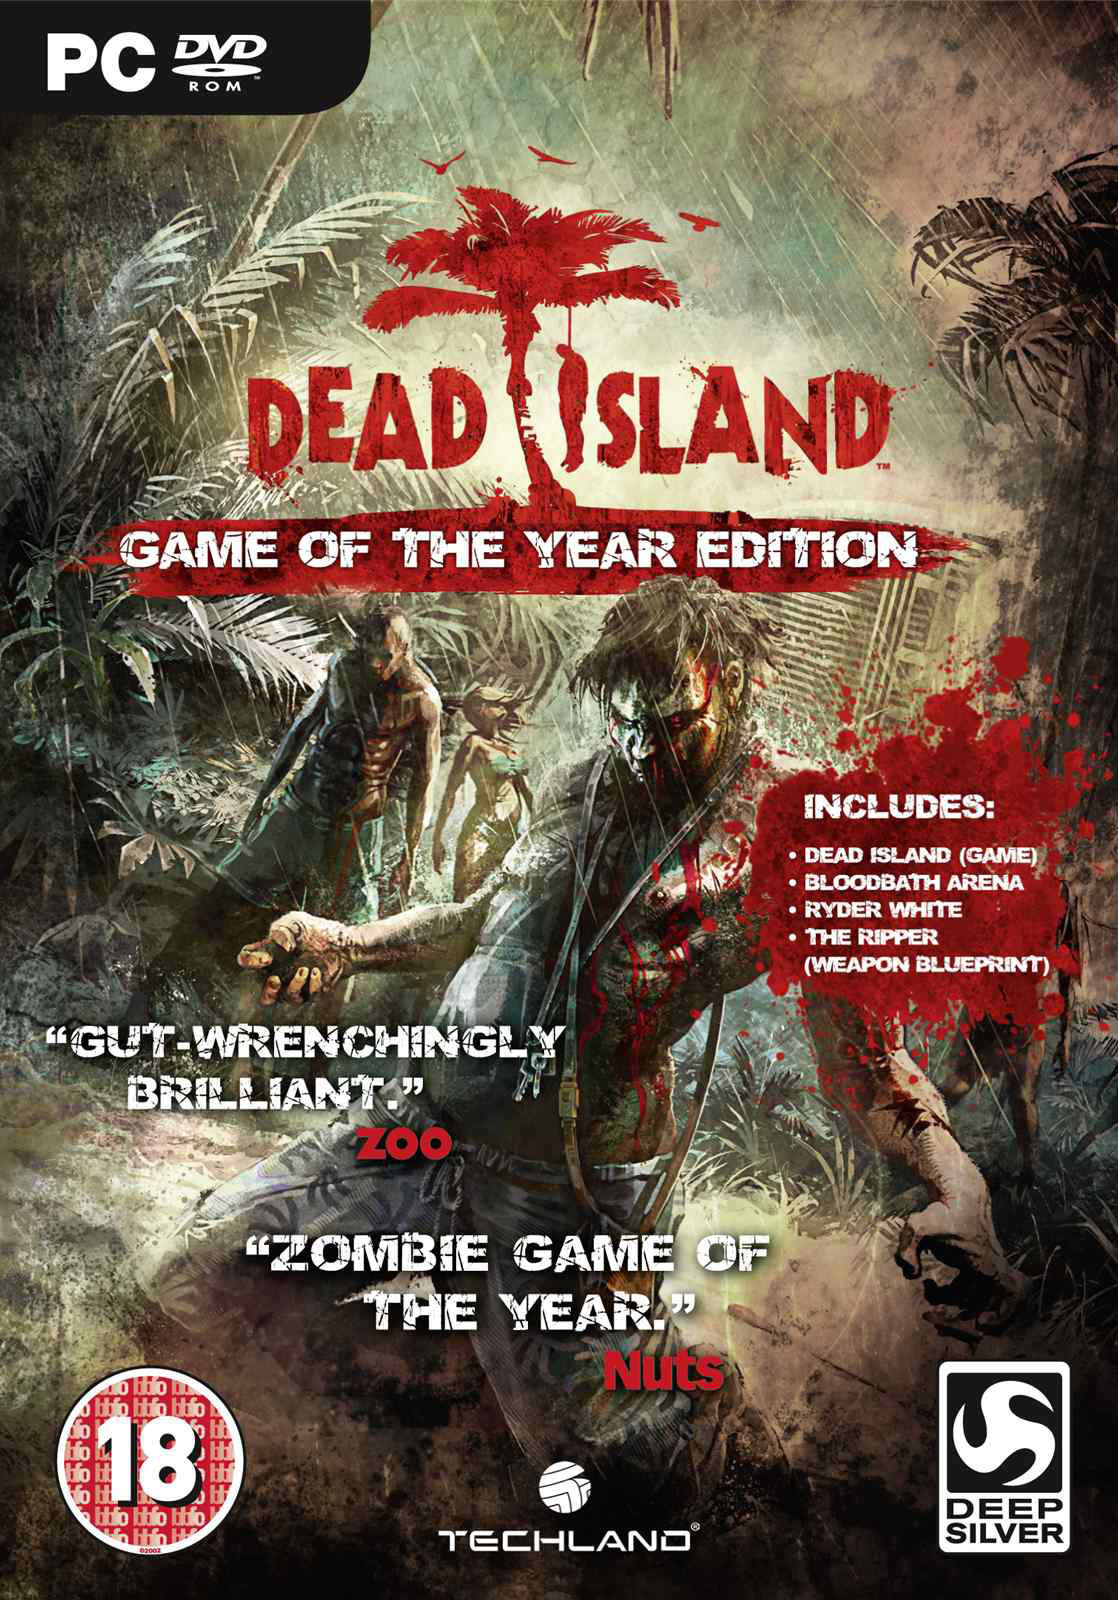 Dead Island: Game of the Year Edition (2011)